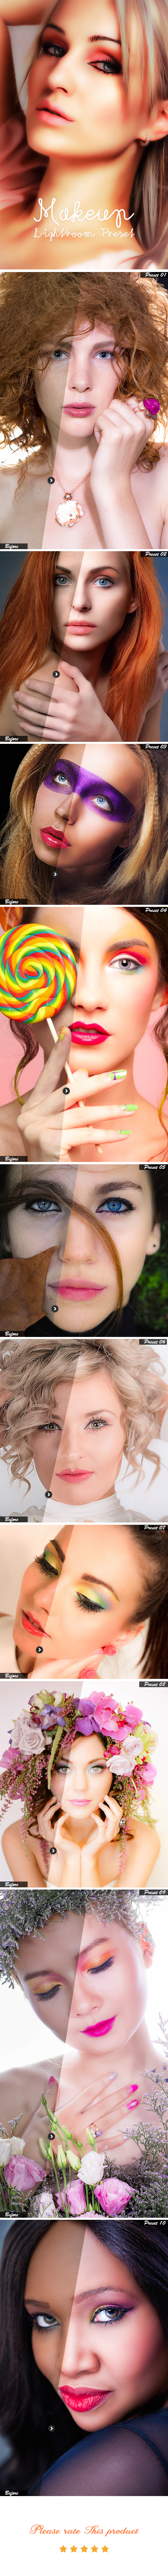 Makeup Lightroom  preset - Lightroom Presets Add-ons